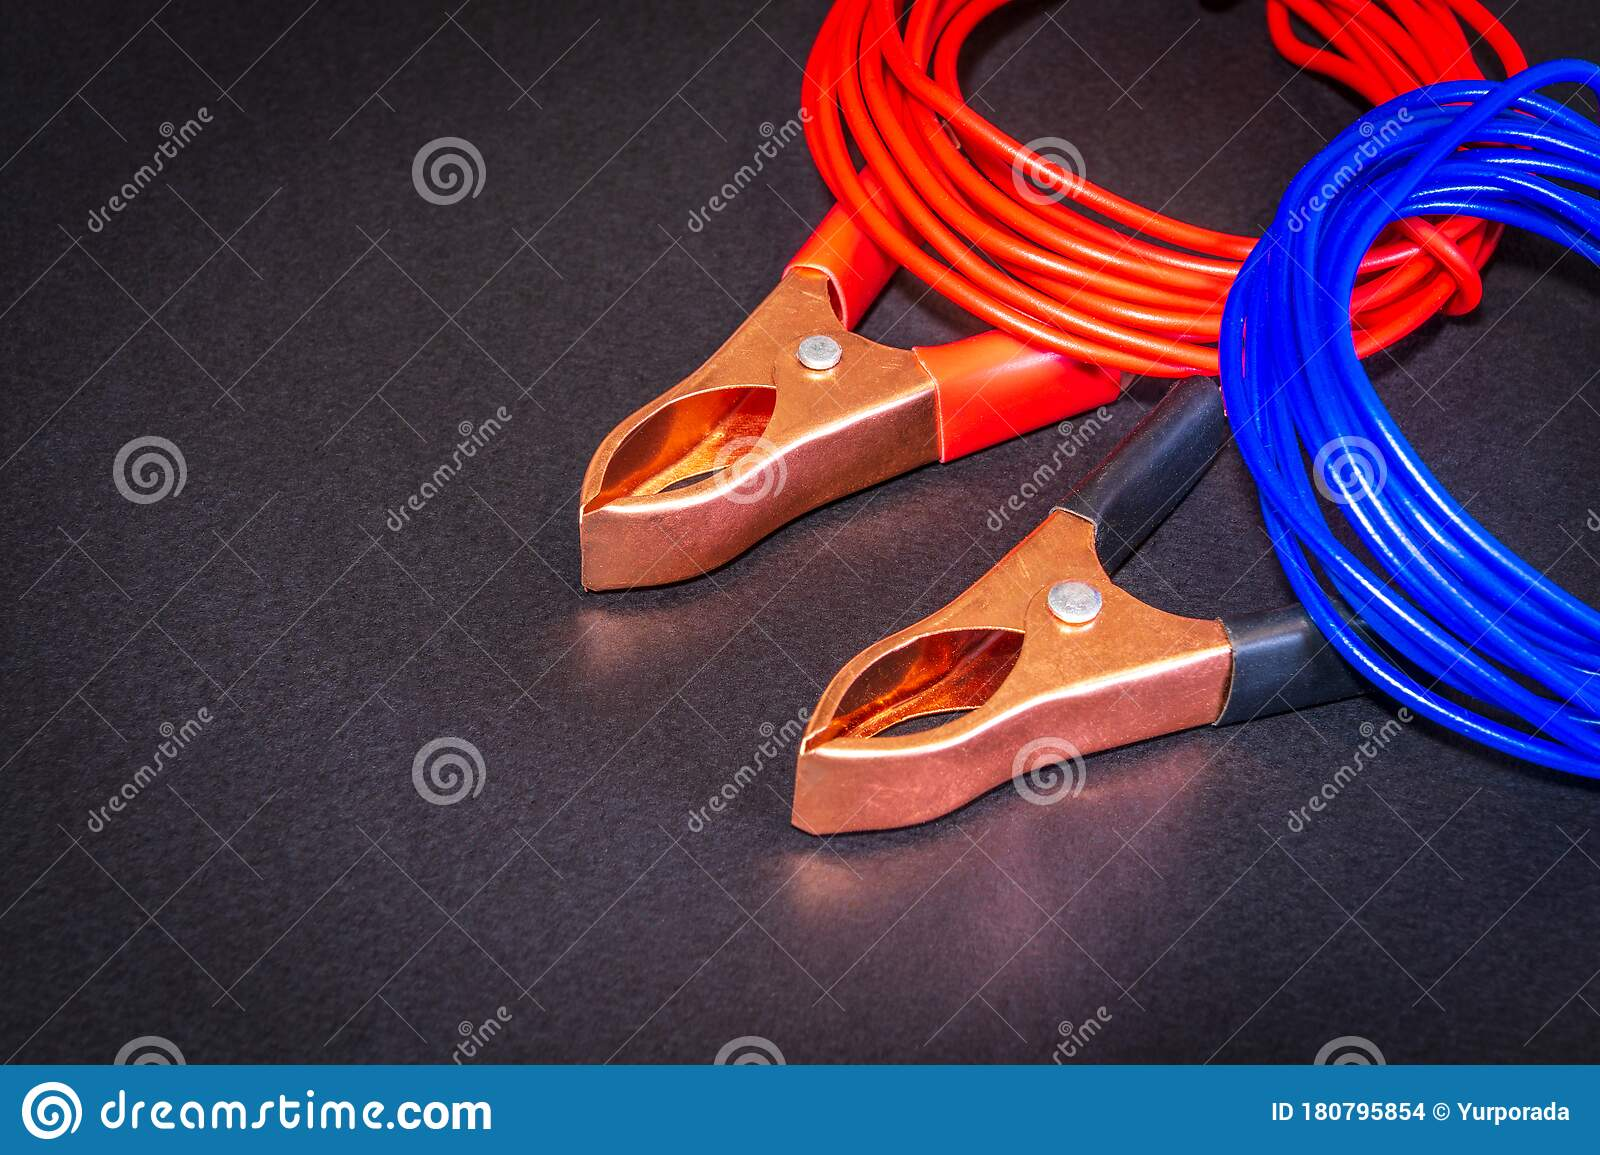 Multicolored Wires And Alligator Clips Prepared For Master Electrician On Black Background Stock Photo Image Of Connection Closeup 180795854